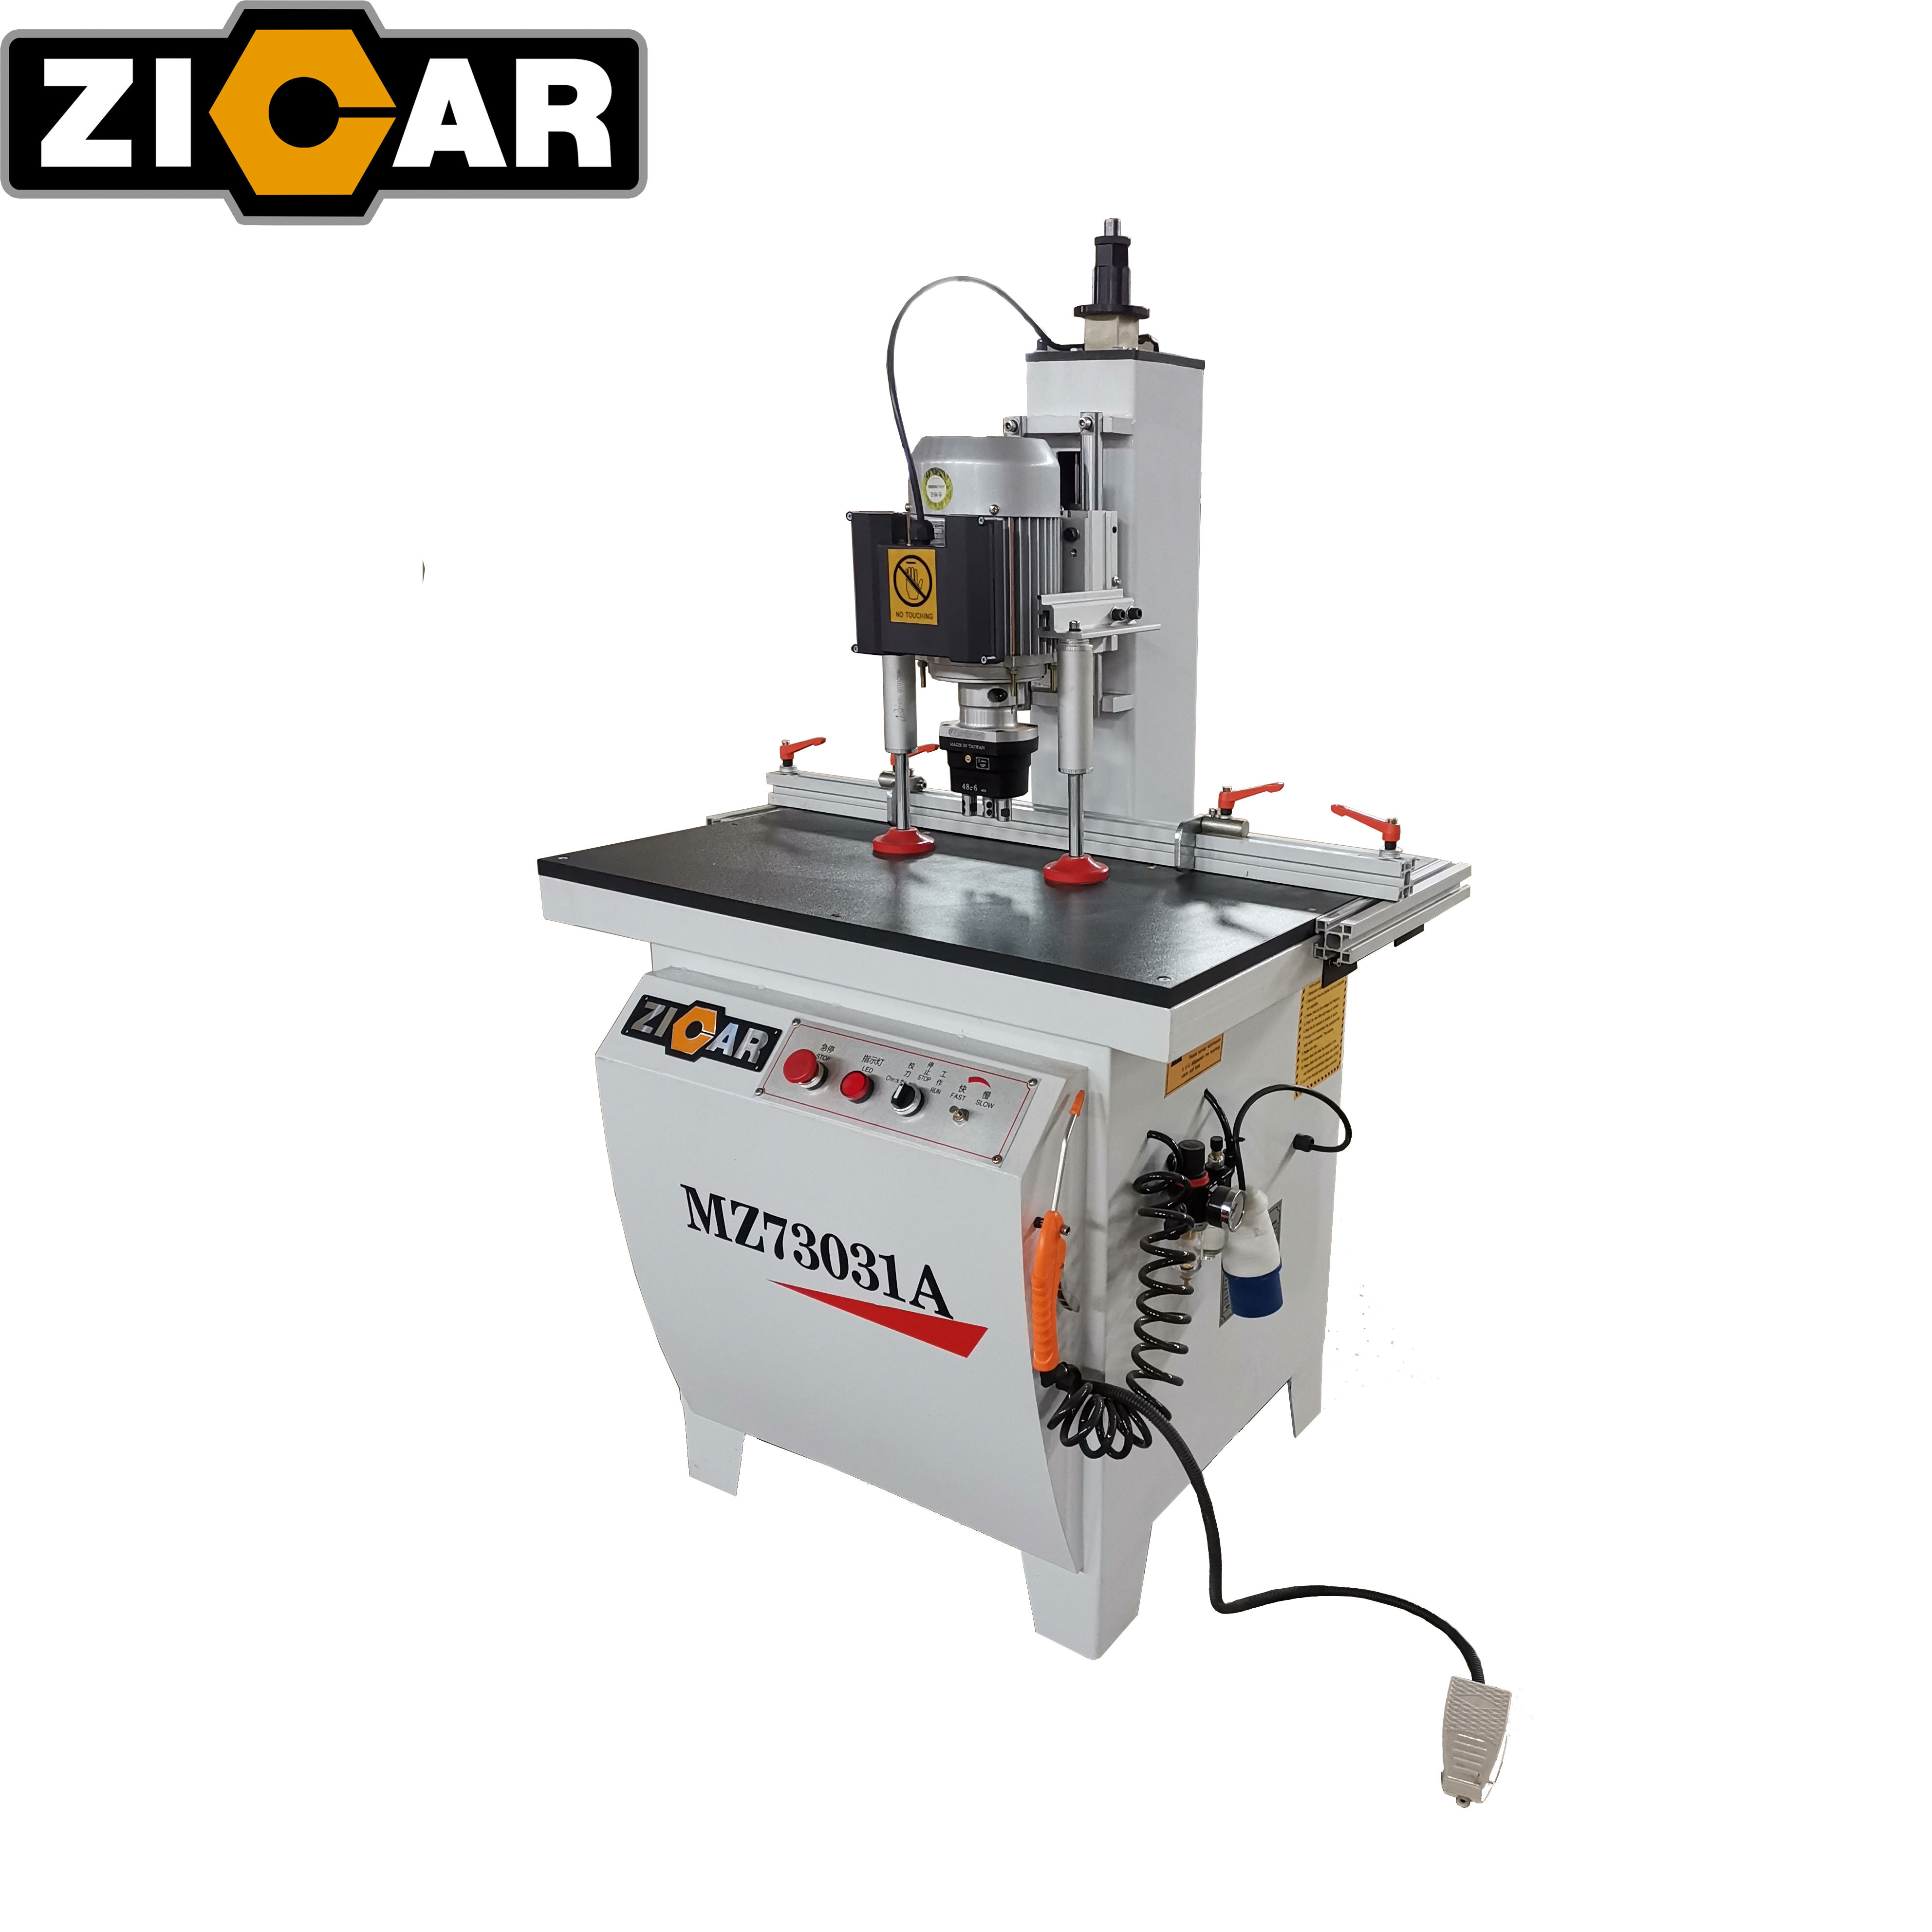 ZICAR High Quality drilling machine cabinet hinge drilling machine hinge boring machine MZ73031A